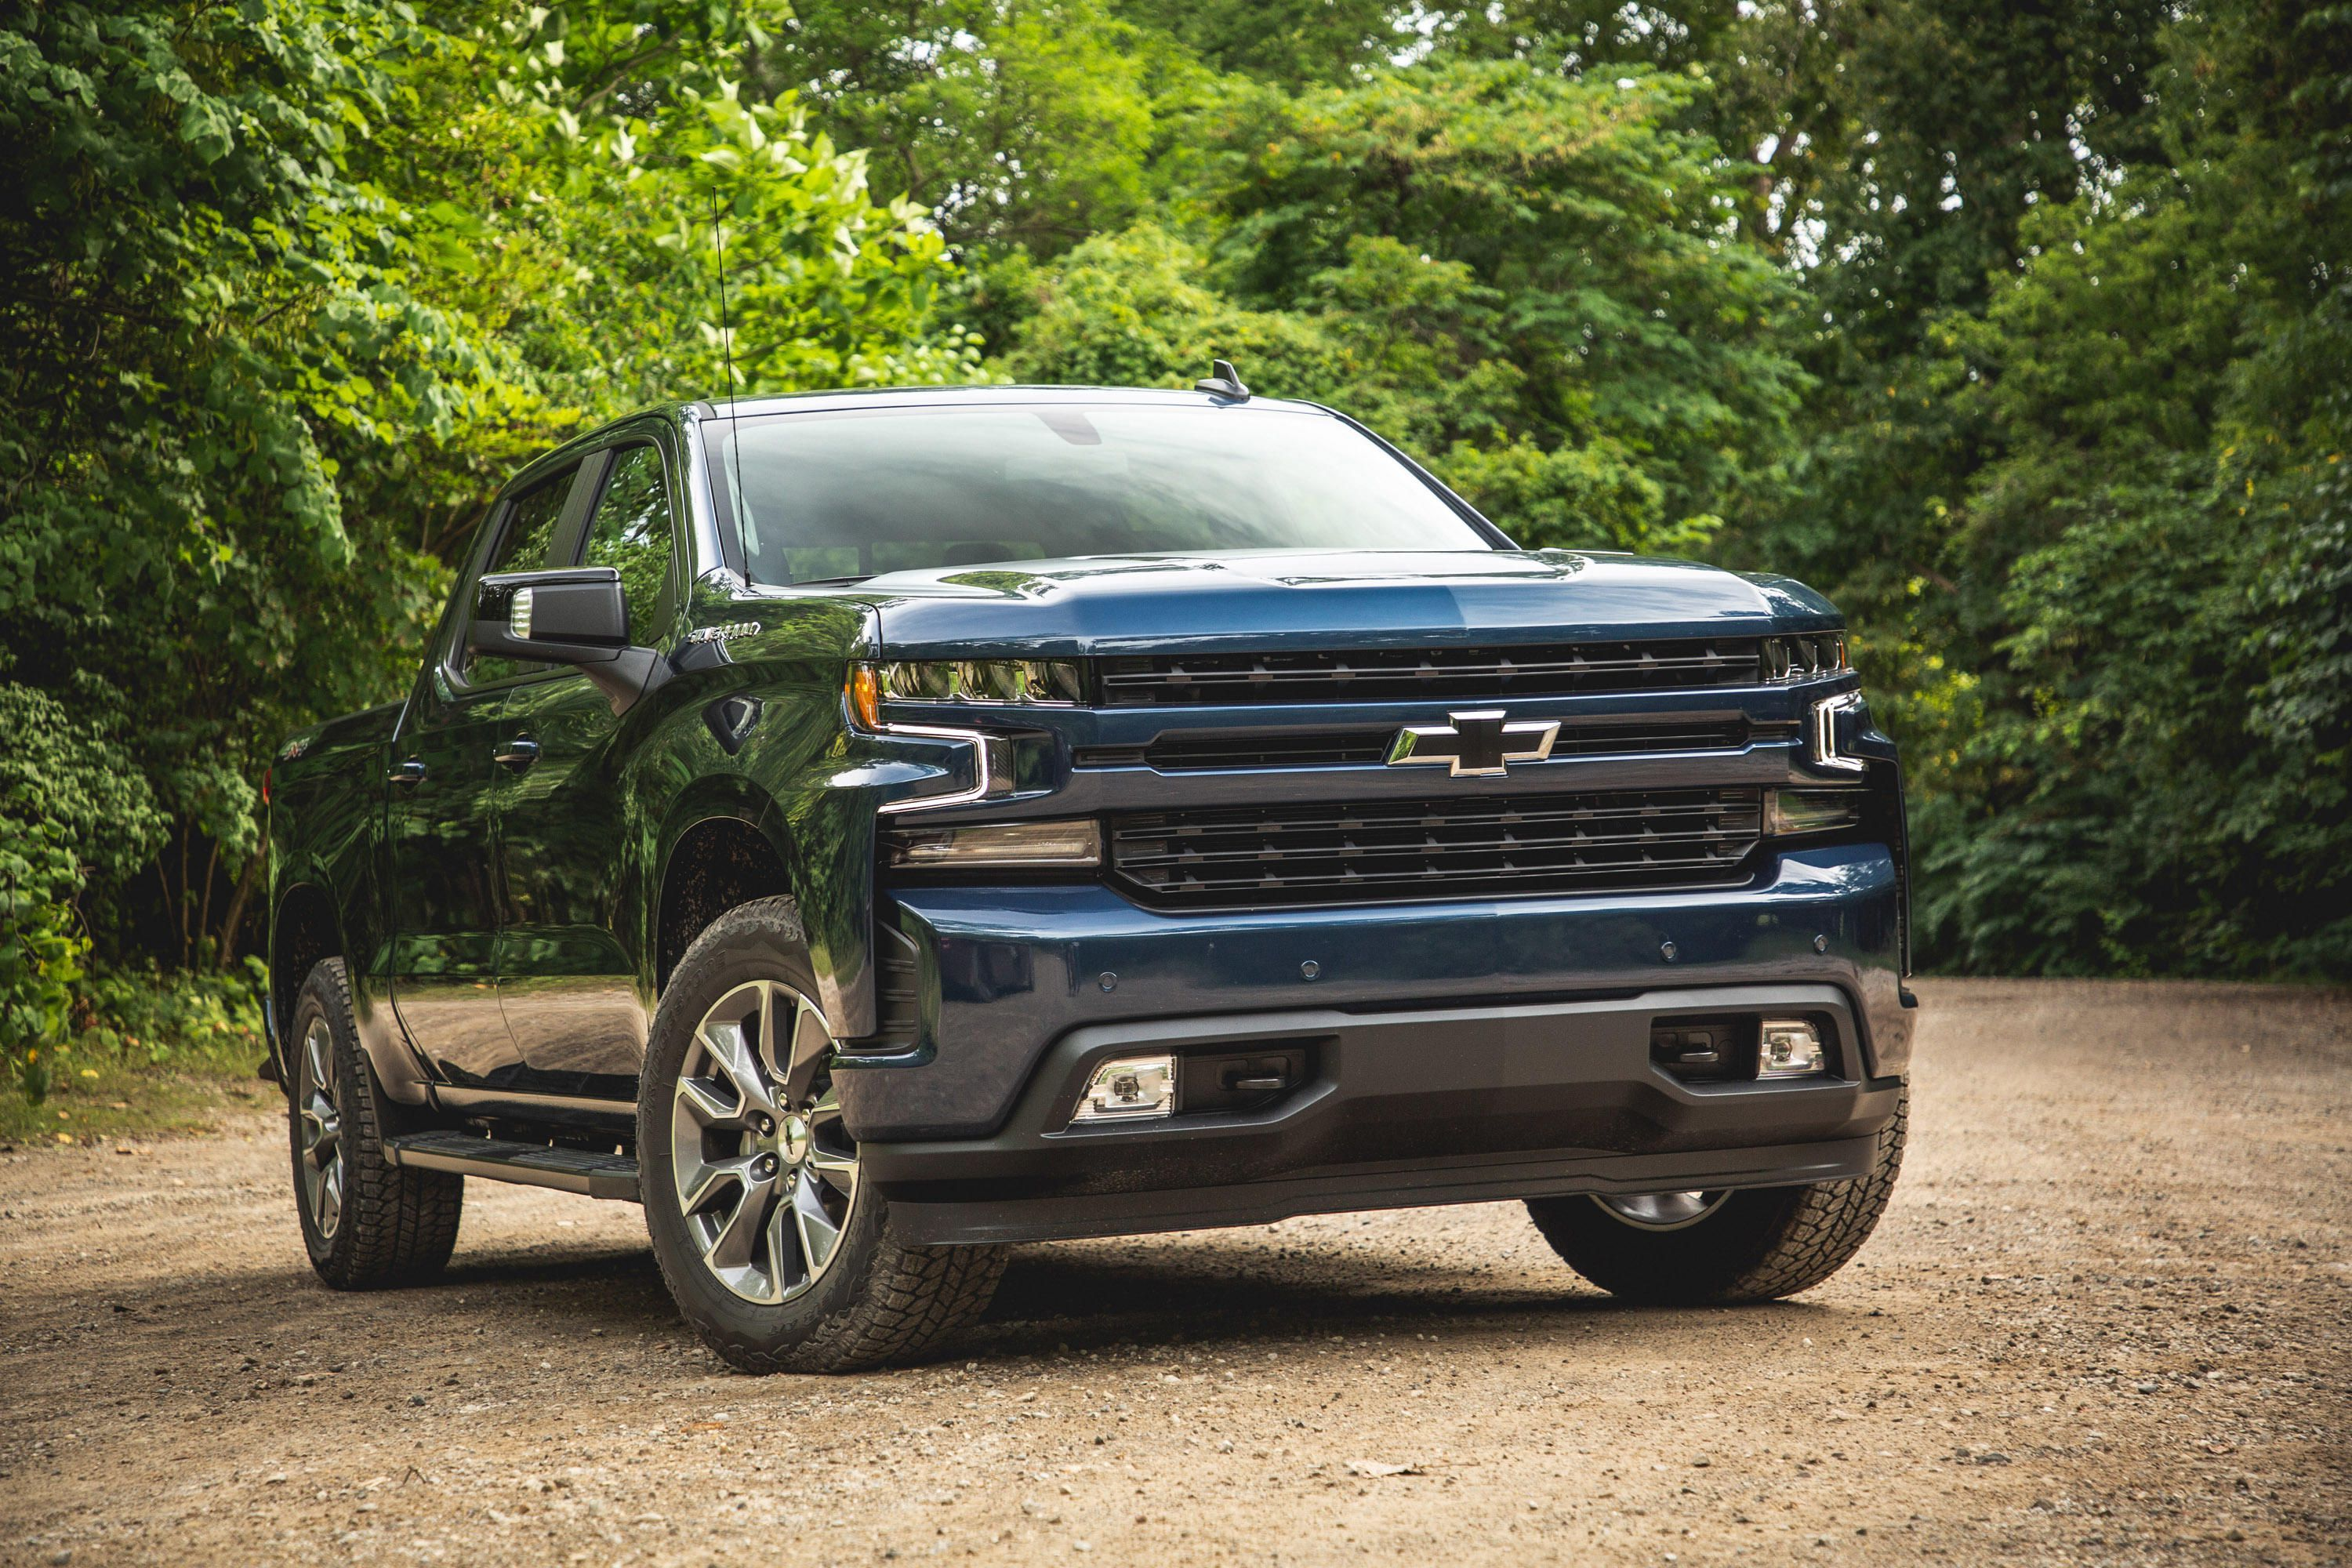 2019 Chevy Silverado Gets Worse Gas Mileage Than The Truck It Replaces Chevy Silverado Silverado Chevy